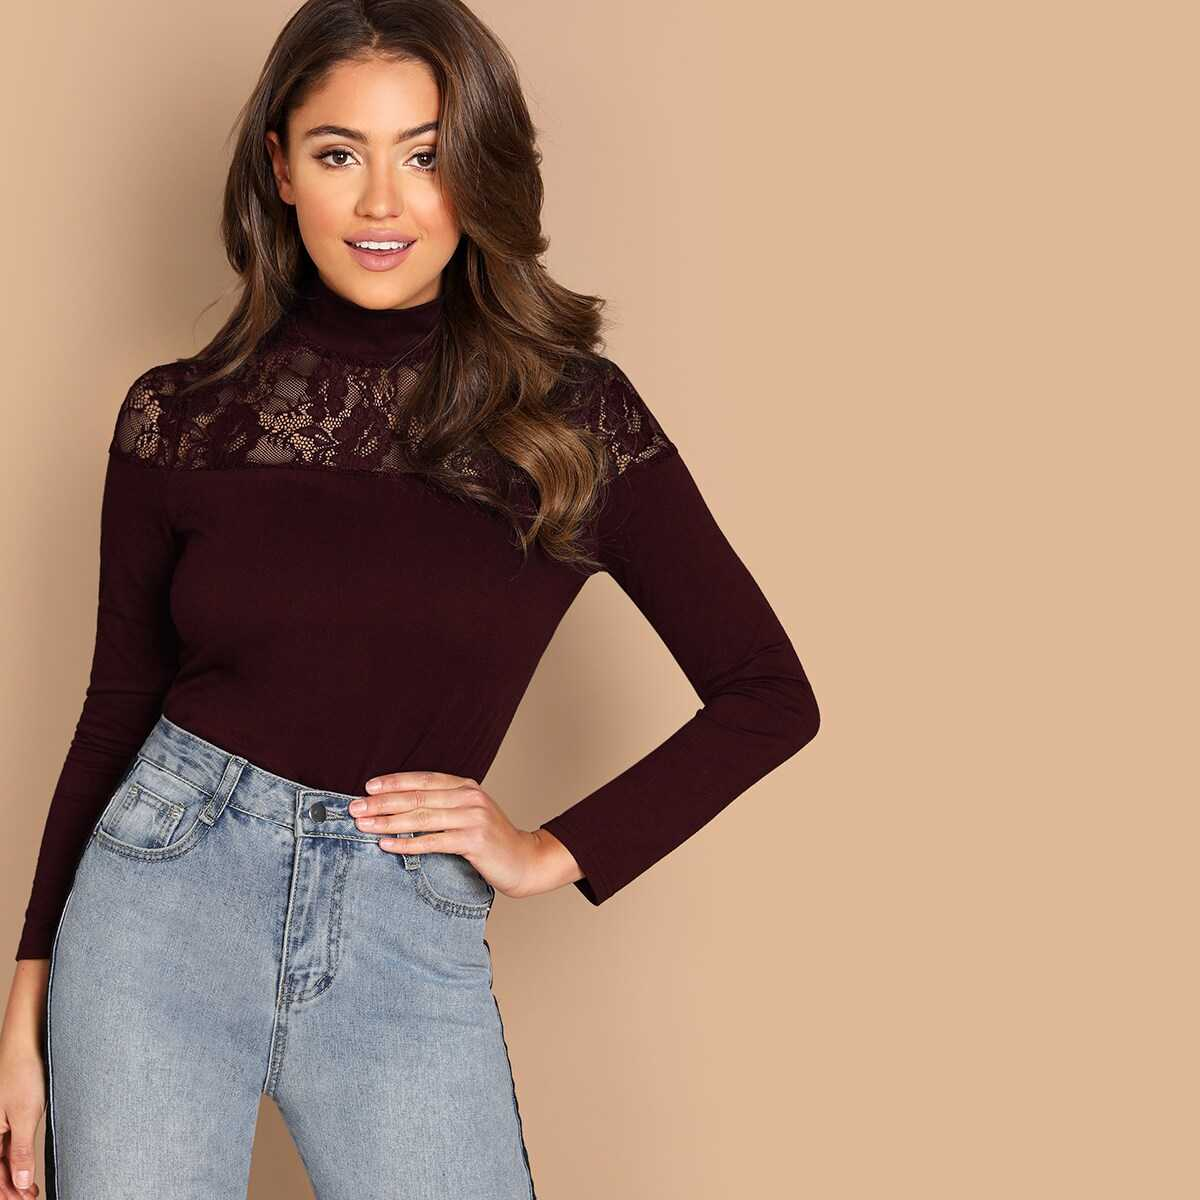 Mock-neck Lace Insert Form Fitting Tee - Shein - GOOFASH